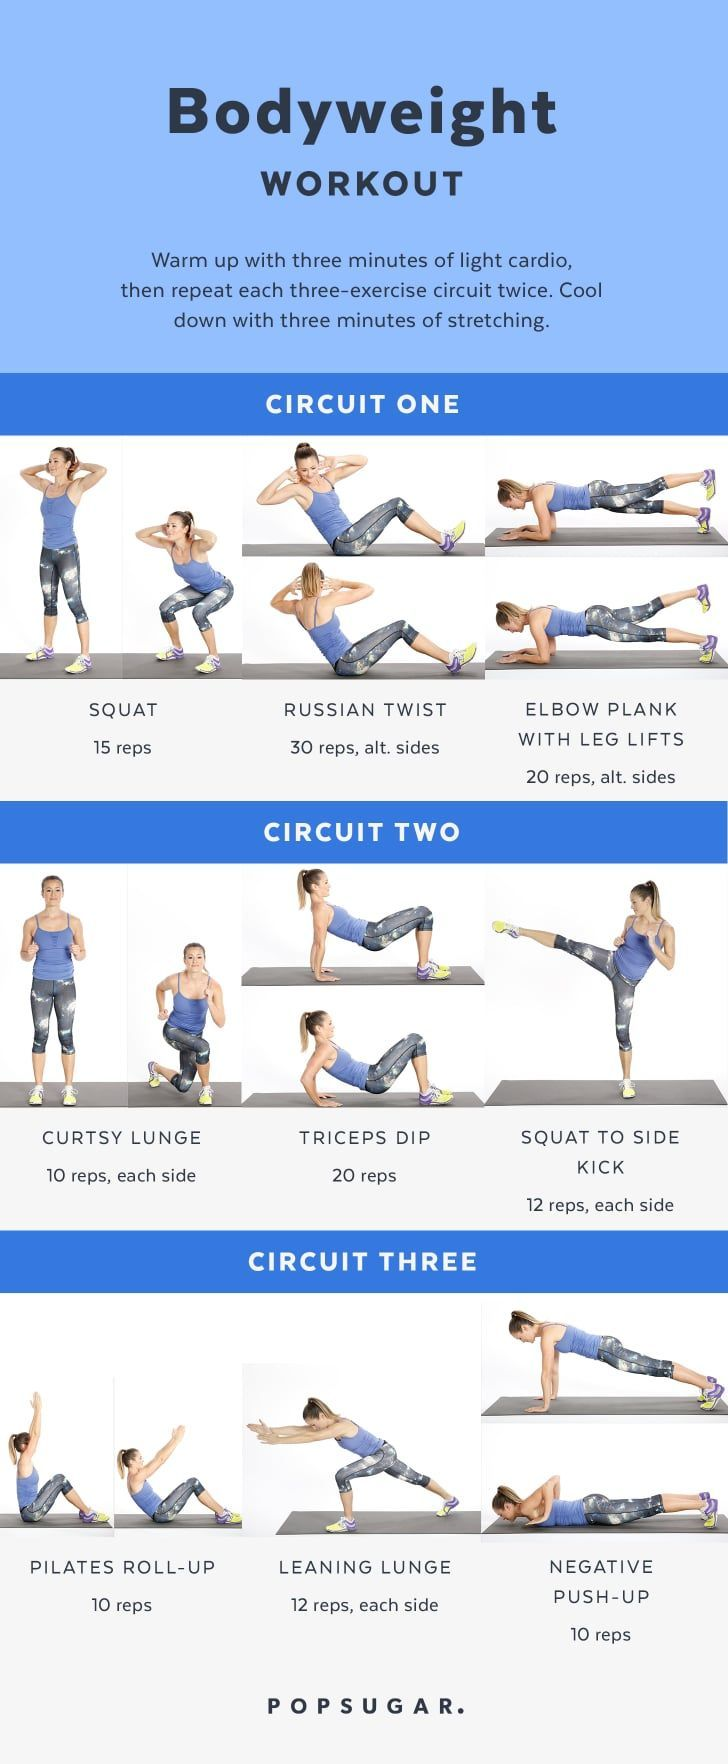 Bodyweight Workout Women | Tone and Strengthen Your Entire Body With This At-Home Workout | POPSUGAR Fitness Photo 11